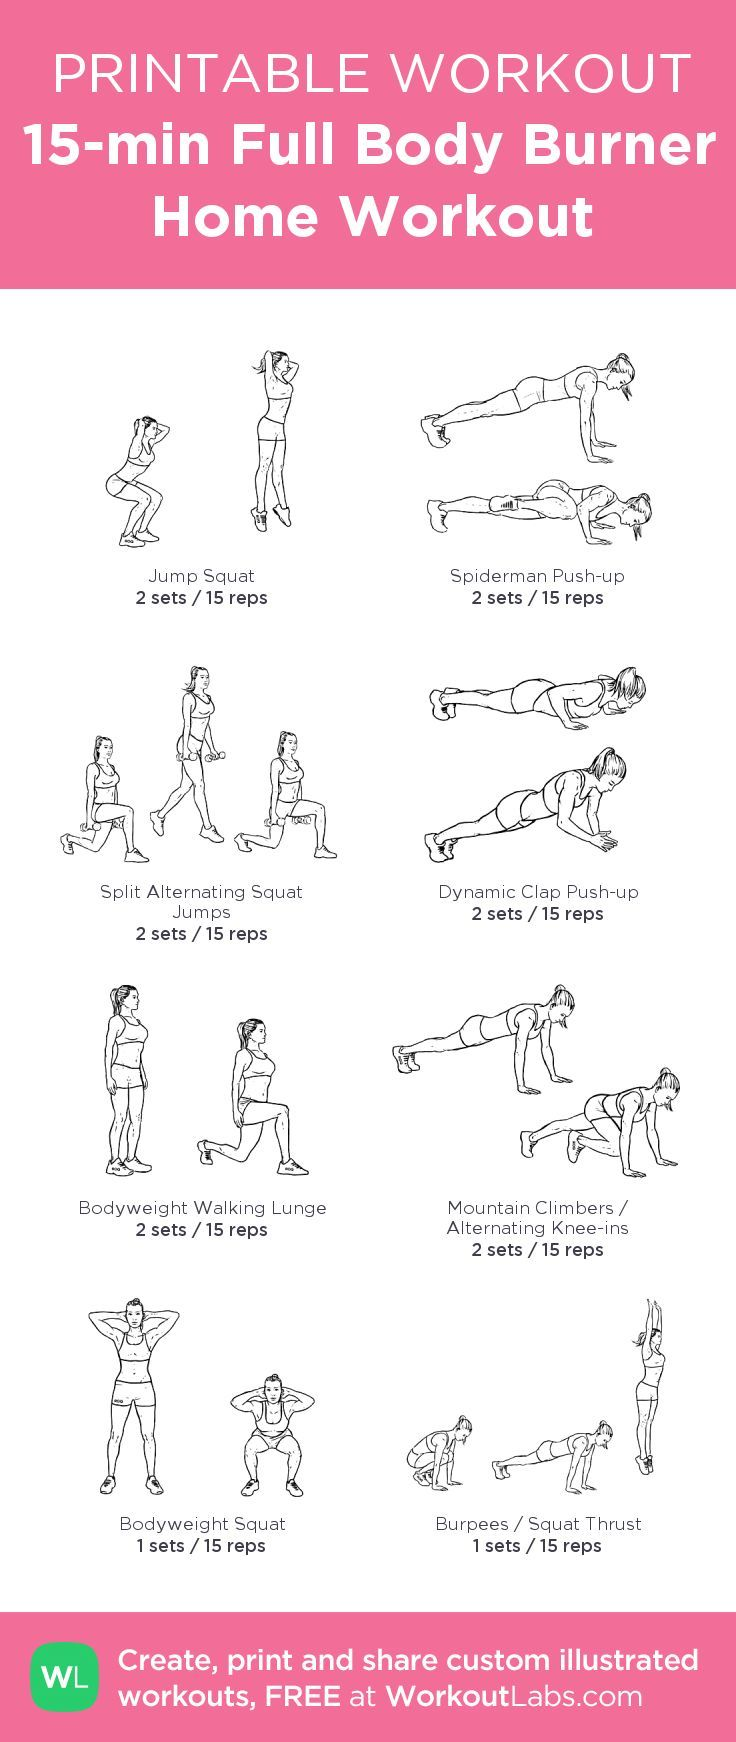 Printable 15 Minute Full Body Burner Home Workout Plan